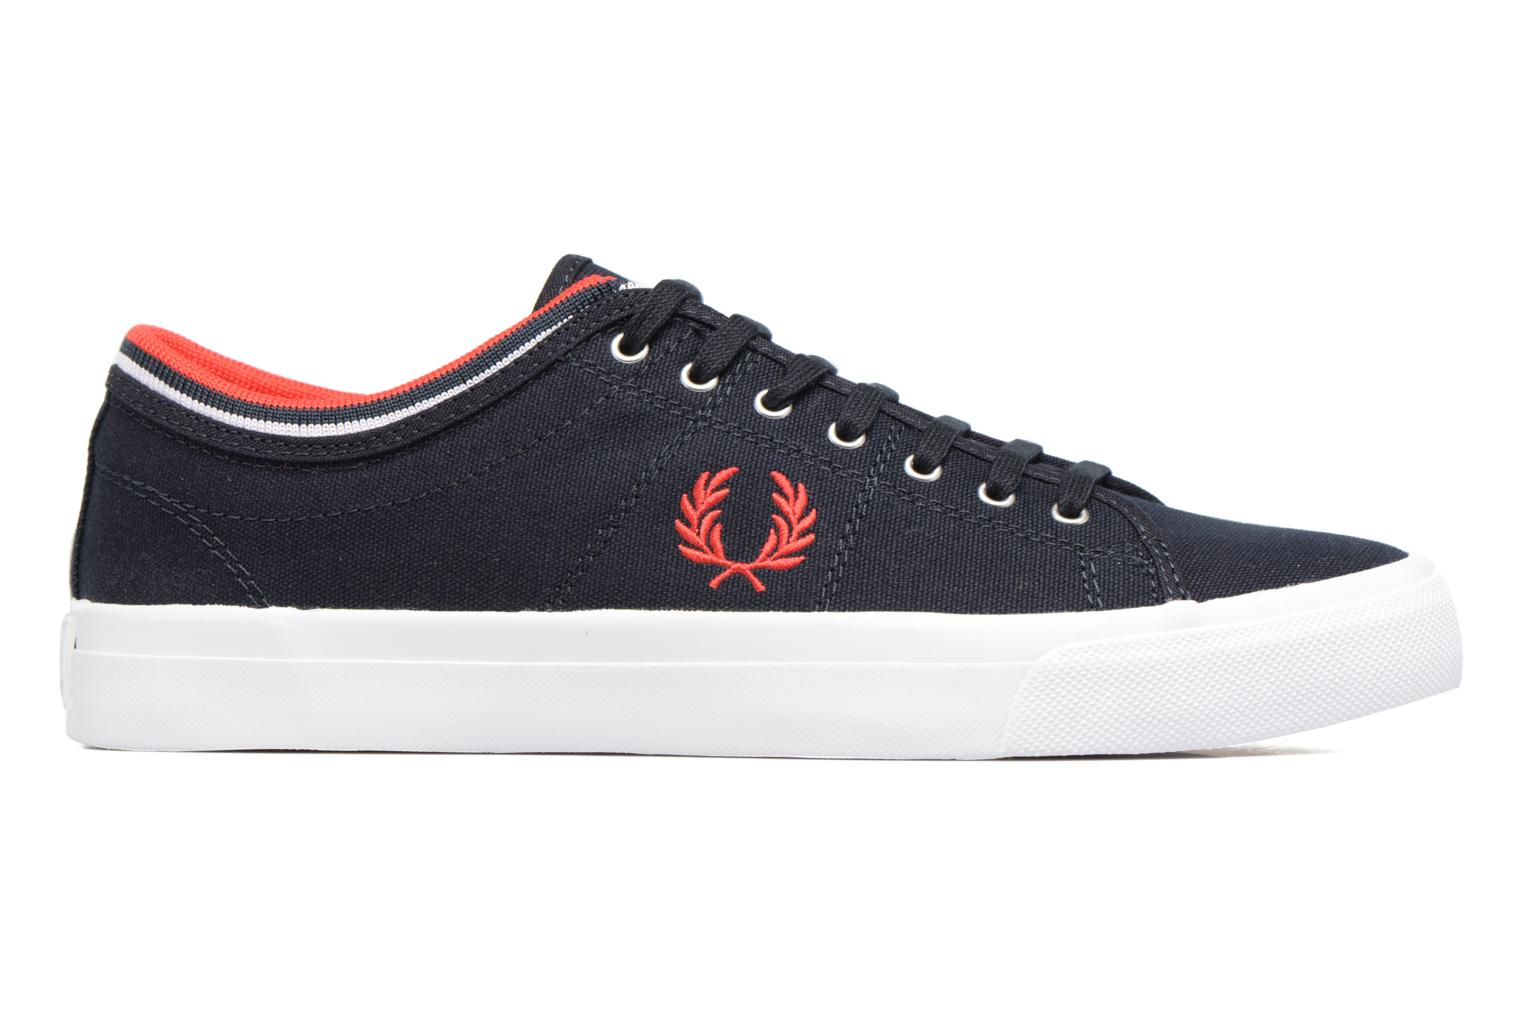 Kendrick tipped cuff canvas Navy/Red/White